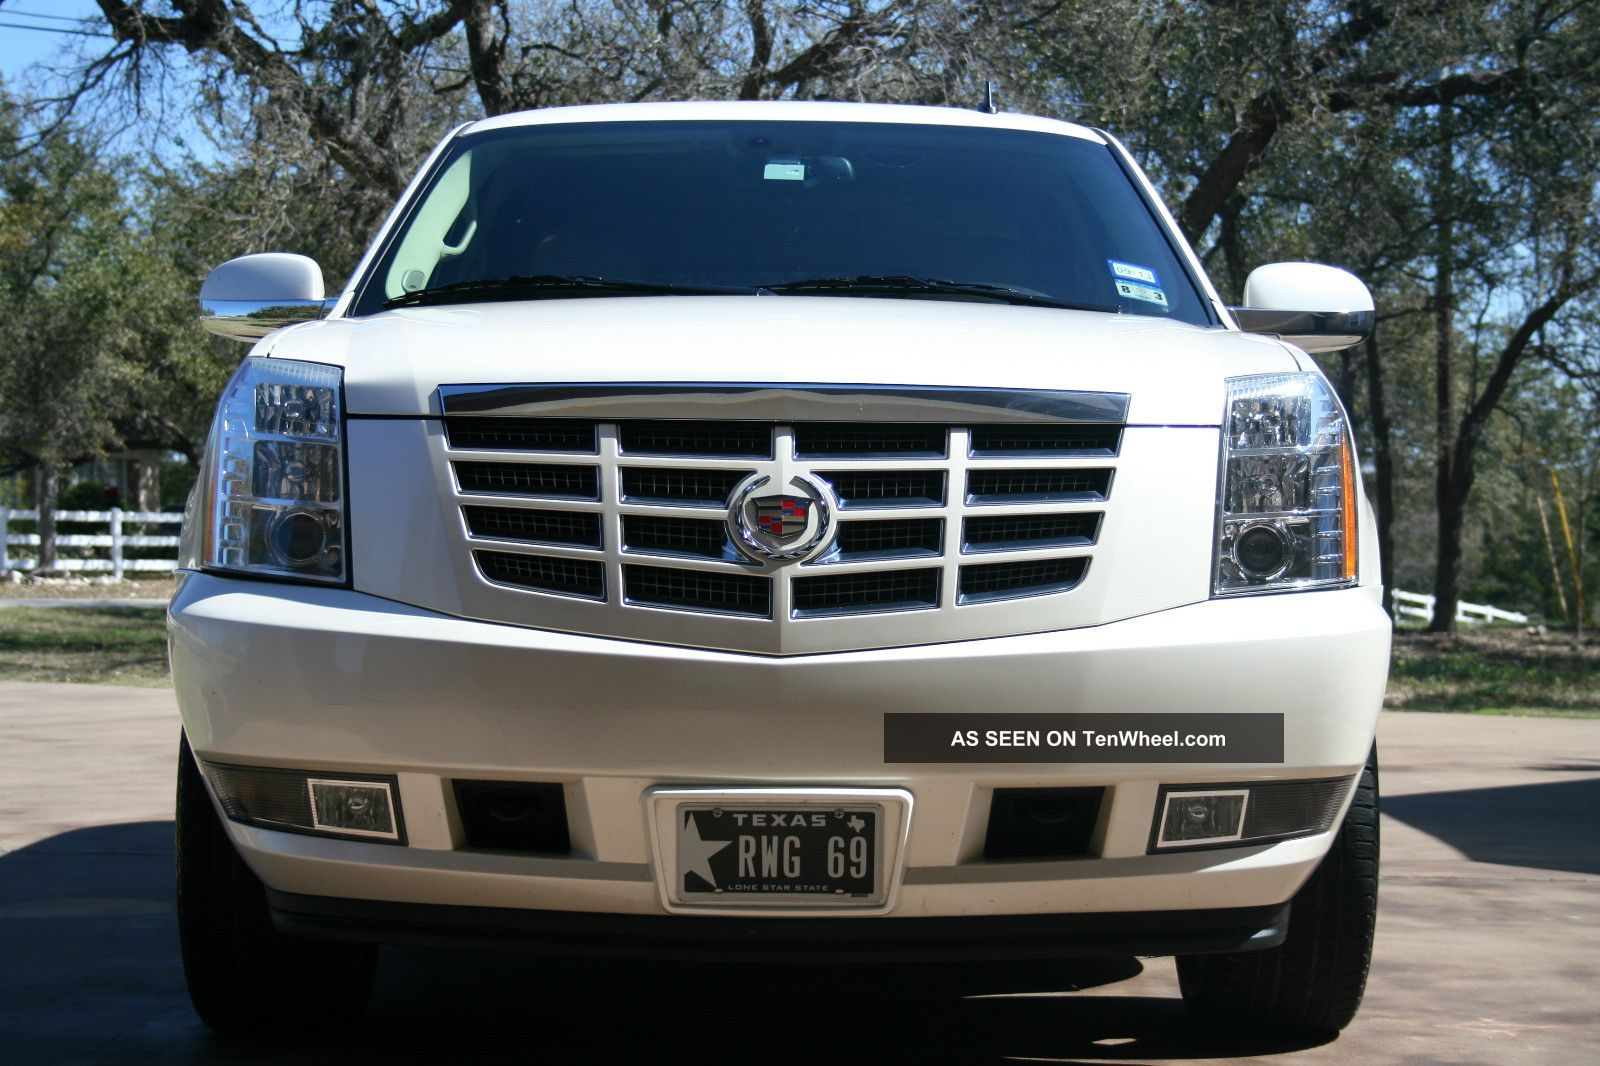 2009 cadillac escalade 22 chrome wheels dvd loaded. Black Bedroom Furniture Sets. Home Design Ideas